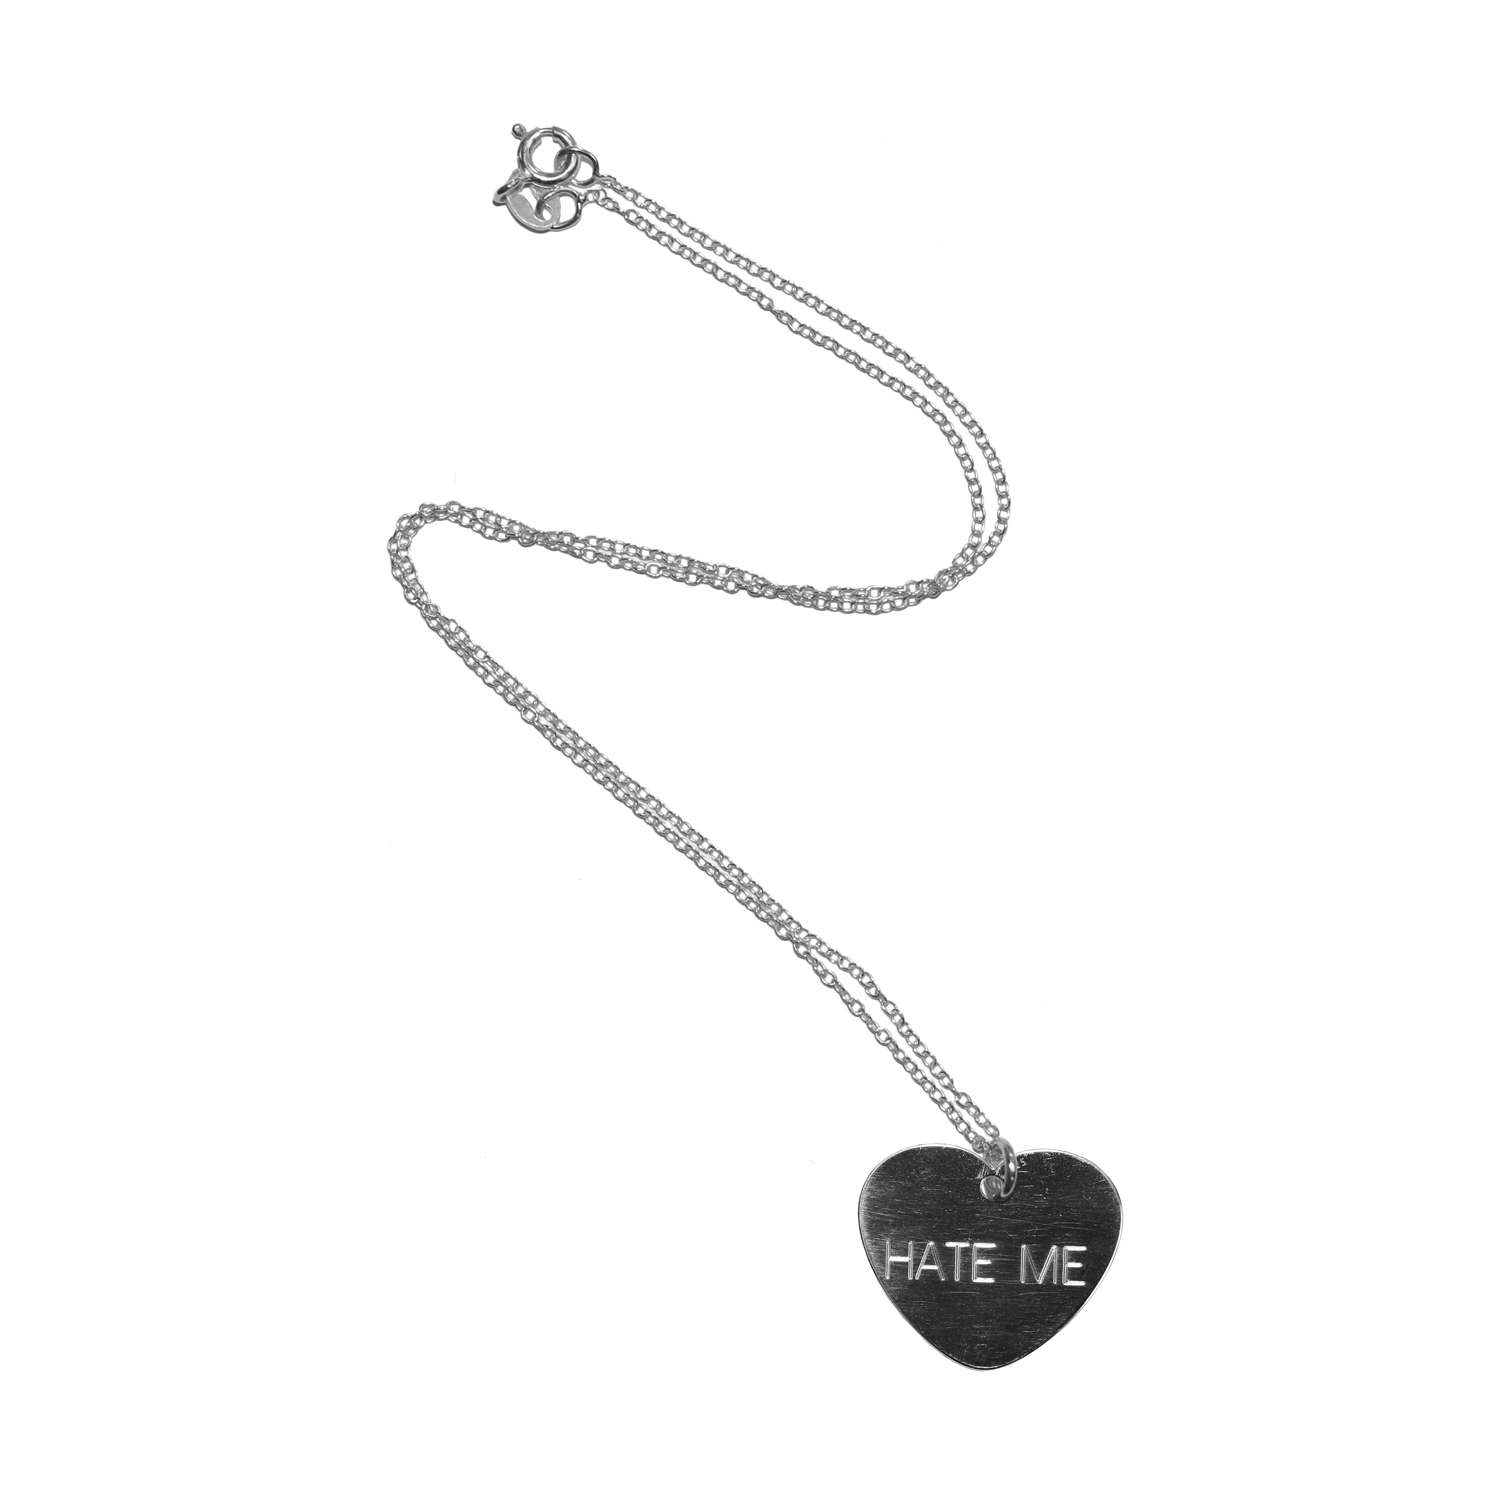 Love Me/Hate Me Reversible Necklace (Sterling Silver)